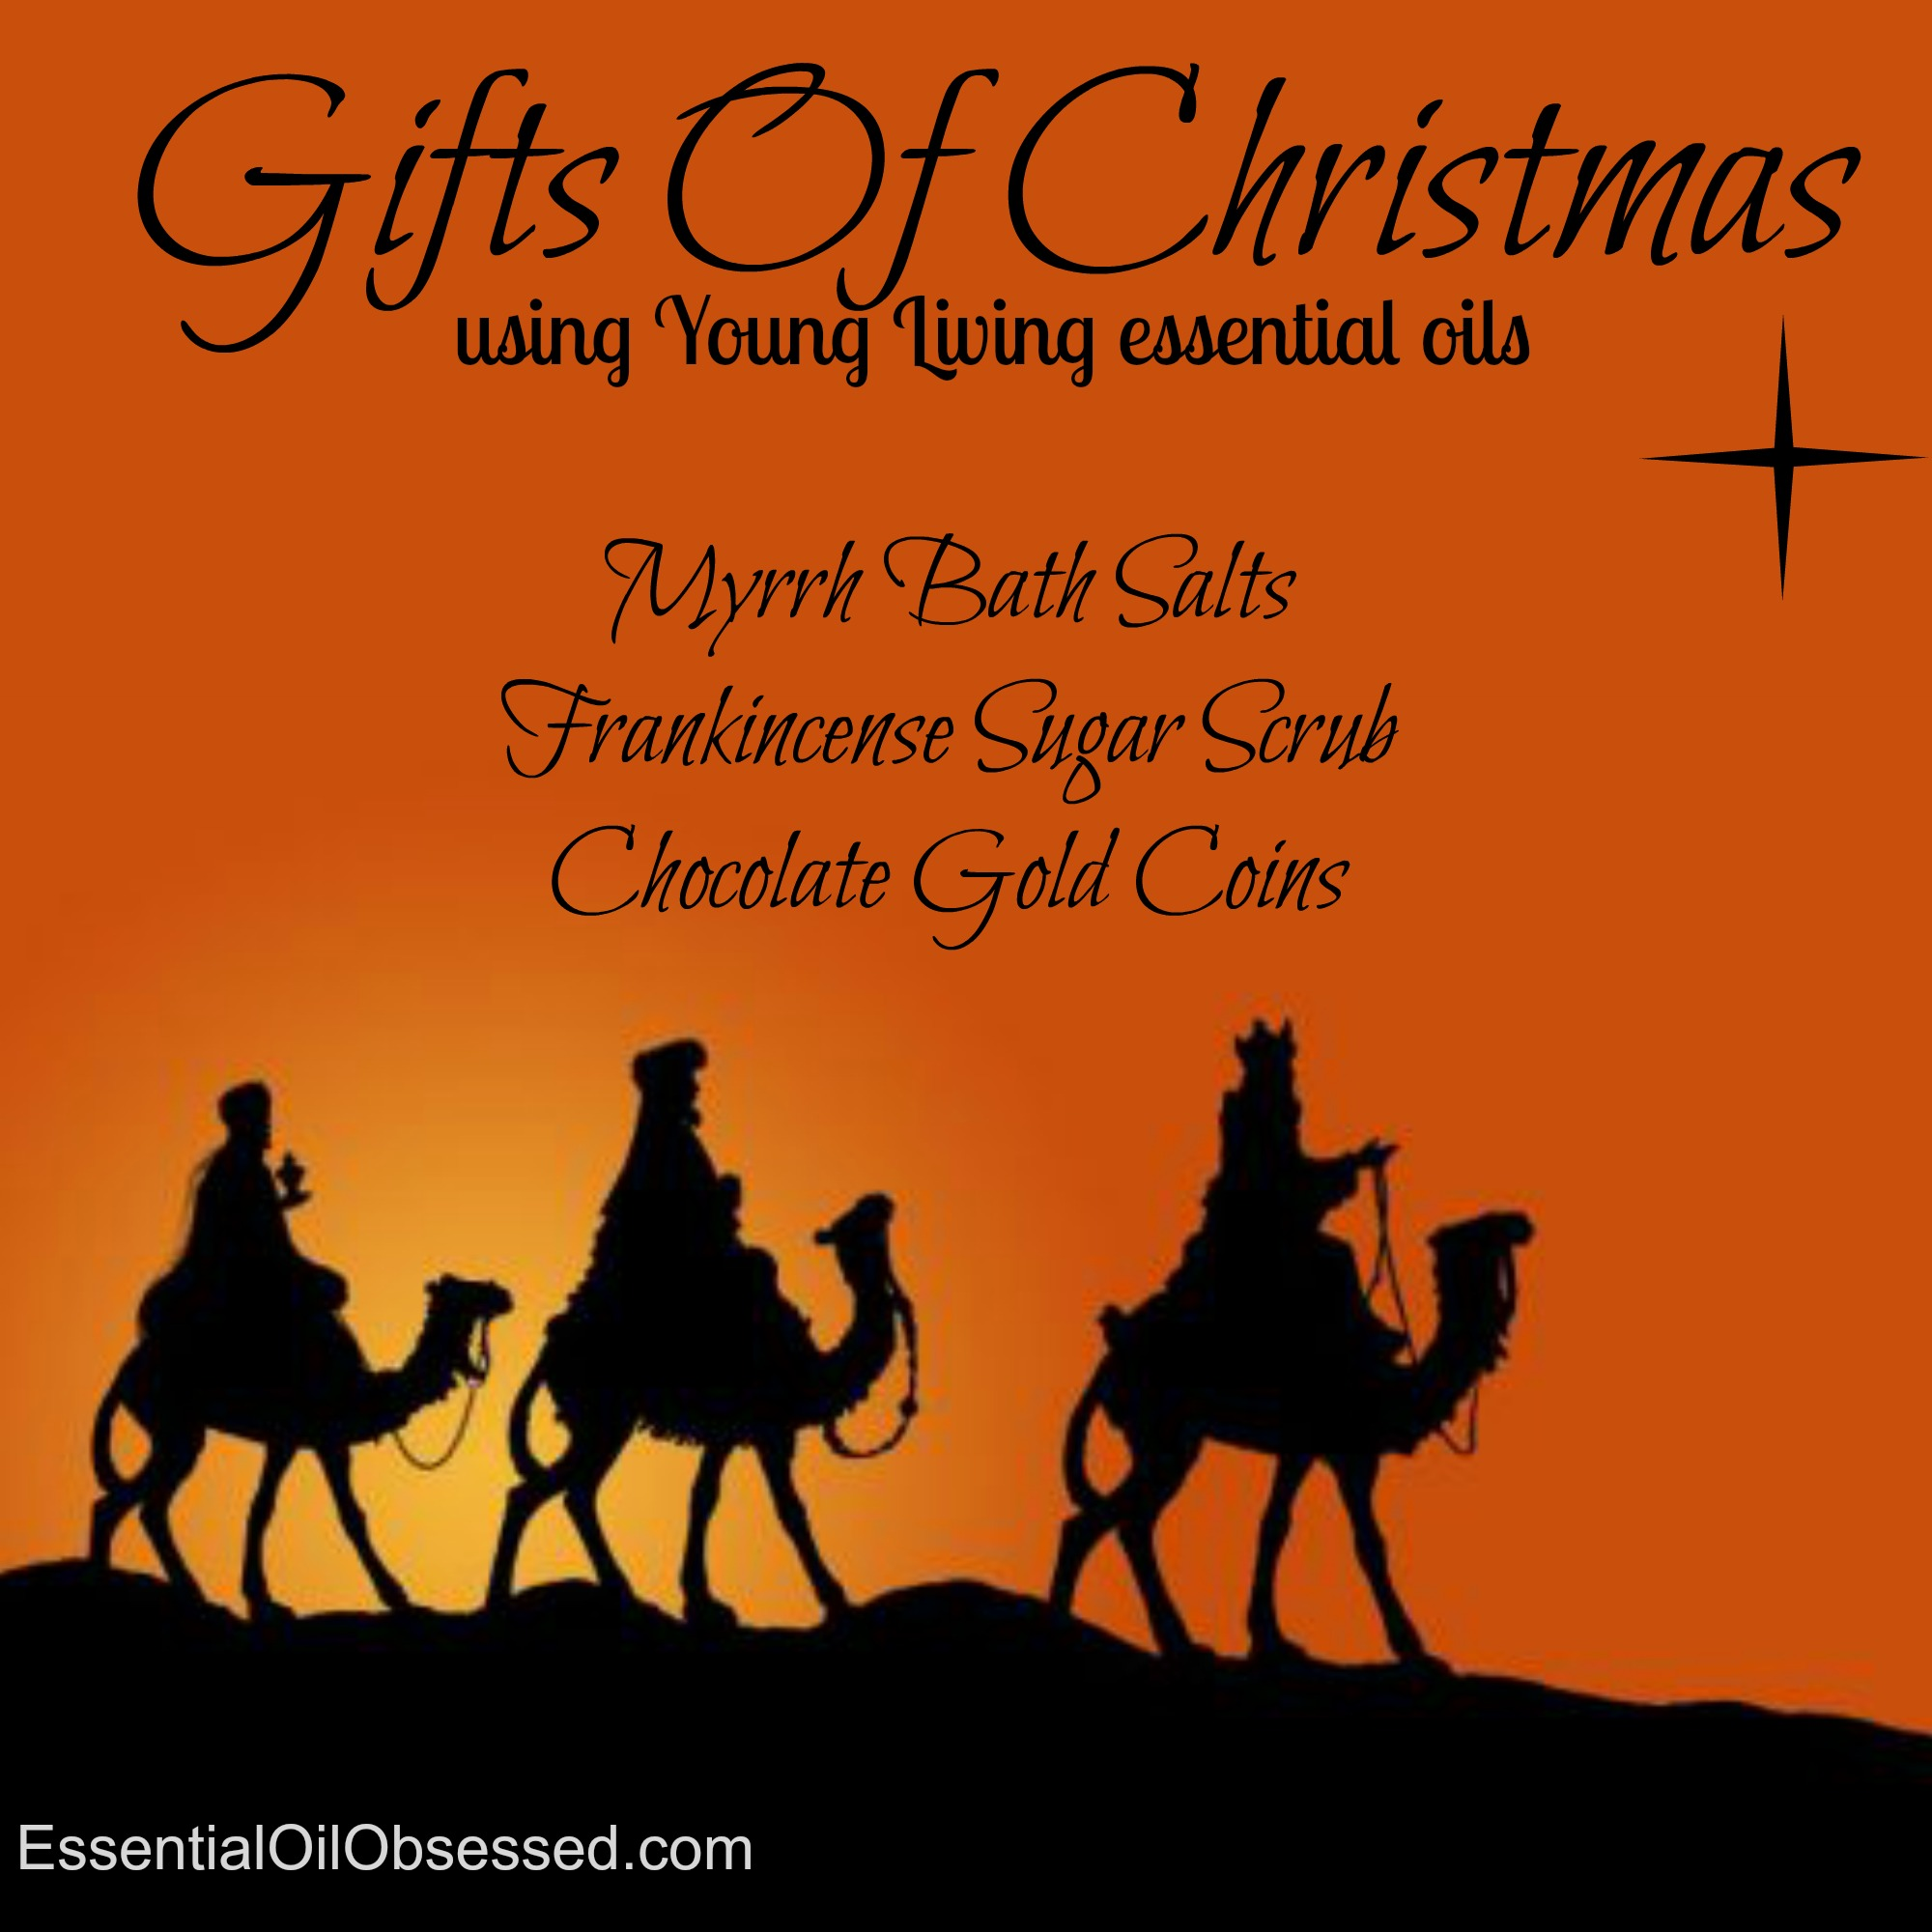 gifts of christmas infographic - Christmas Essential Oils